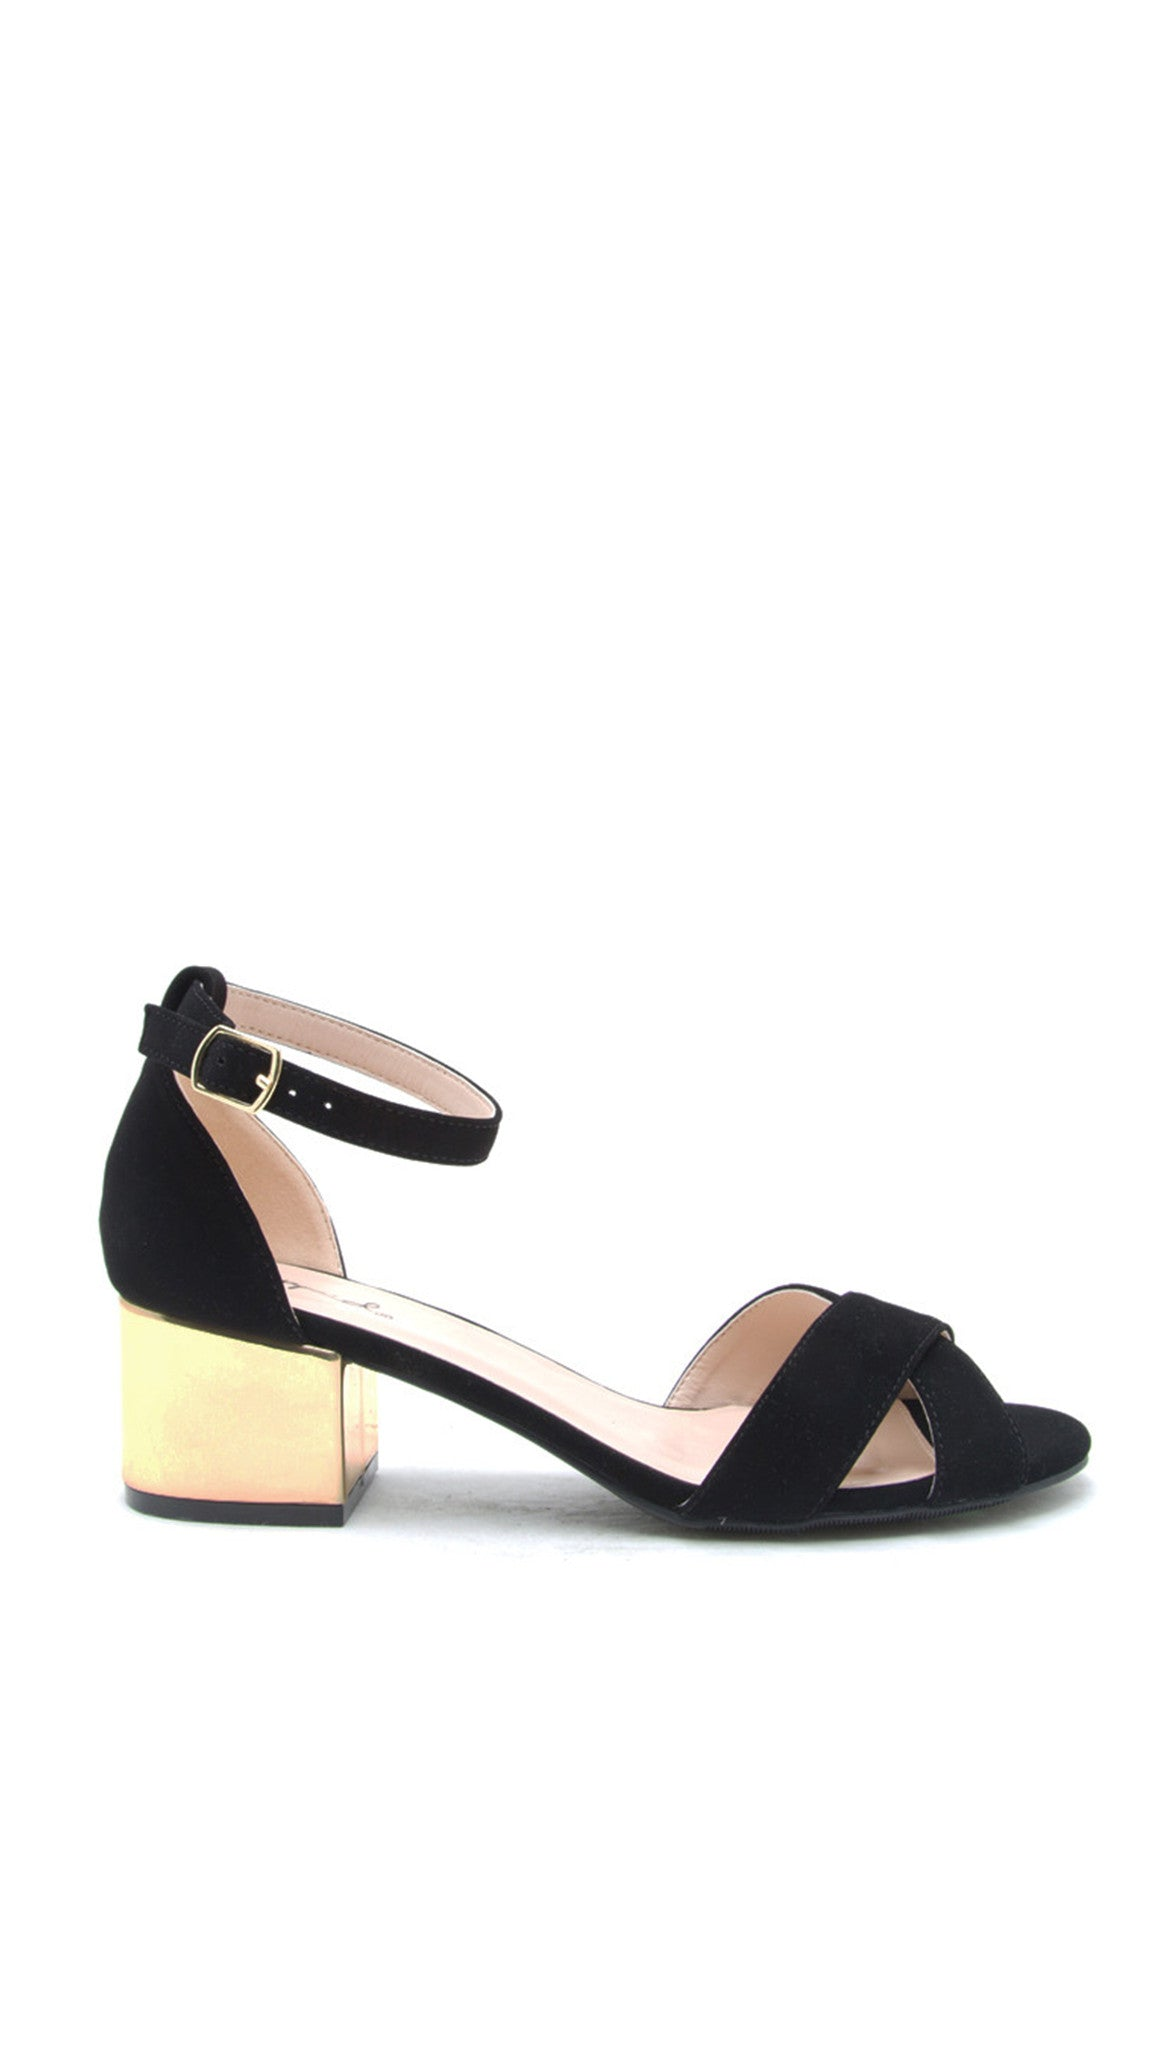 2b74ce1f30 Criss Cross Black Suede Open Toe Sandals Gold Block Heel Ankle Strap  Leather Shoes